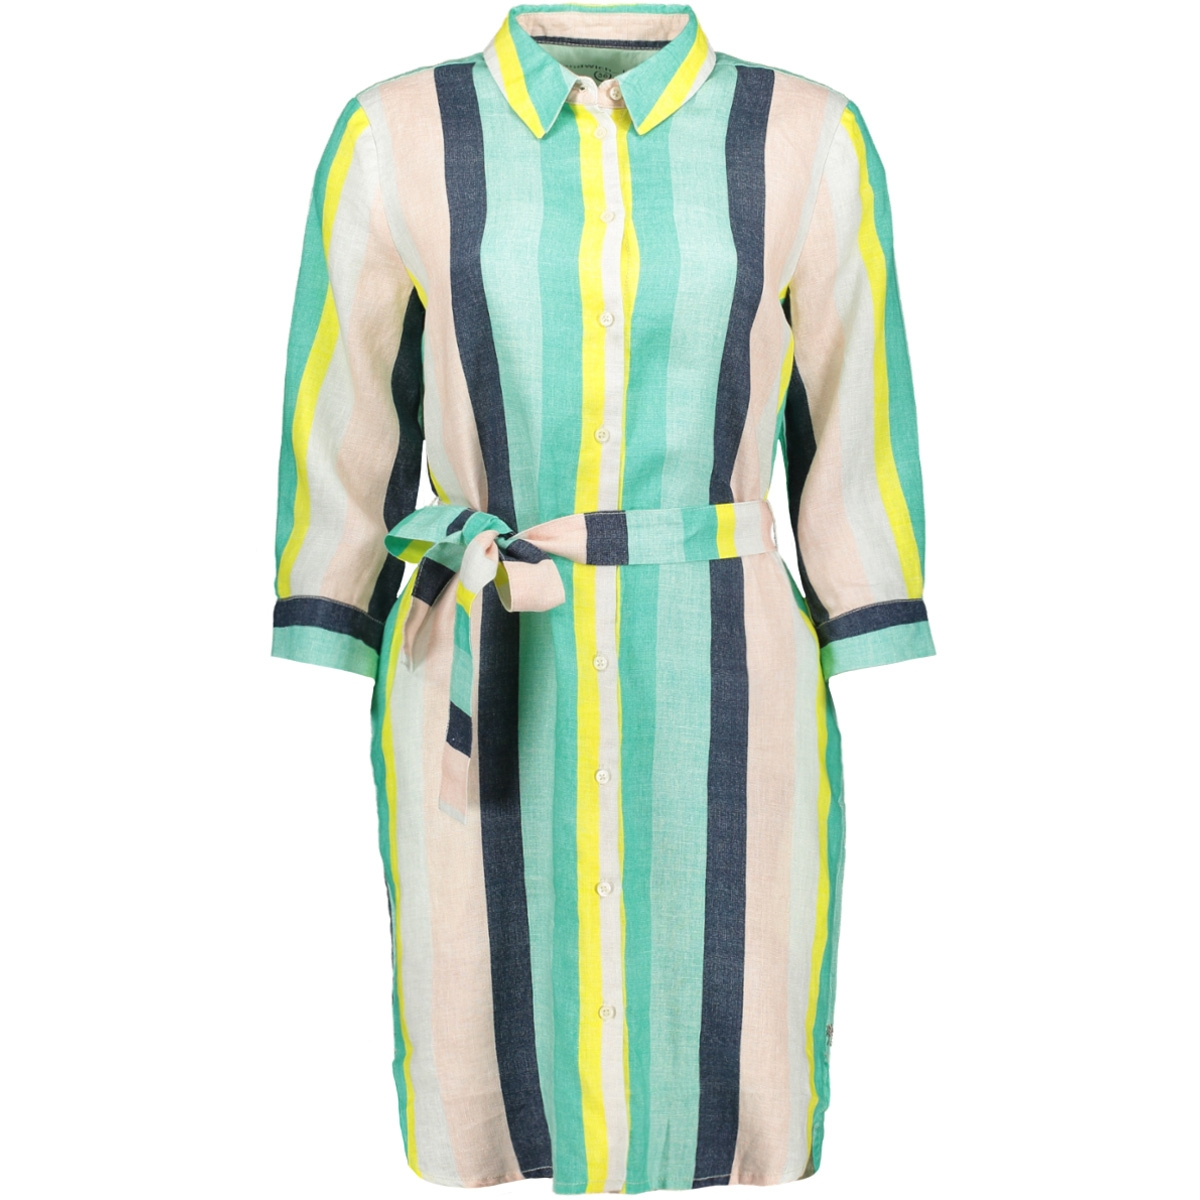 multi coloured gestreepte jurk 23001539 sandwich jurk 50056